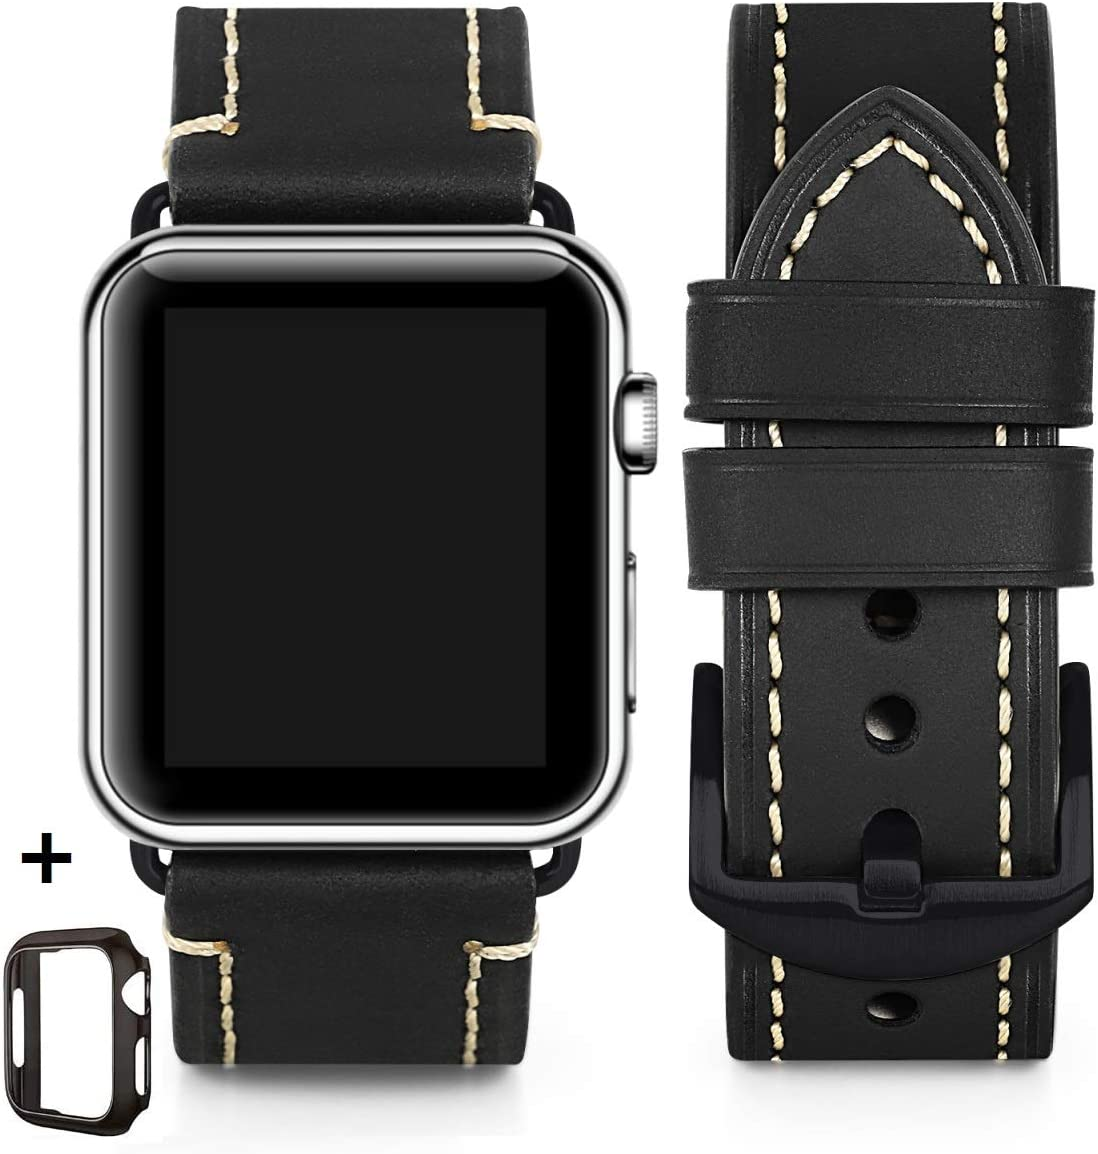 Compatible for Apple Watch Band 42mm 44mm 38mm 40mm Men,Top Grain Leather Band Replacement Strap iWatch Series 6/5/ 4/ 3/ 2/ 1,SE,Sport, Edition. Retro Leather (Black/Black buckle, 38mm40mm)